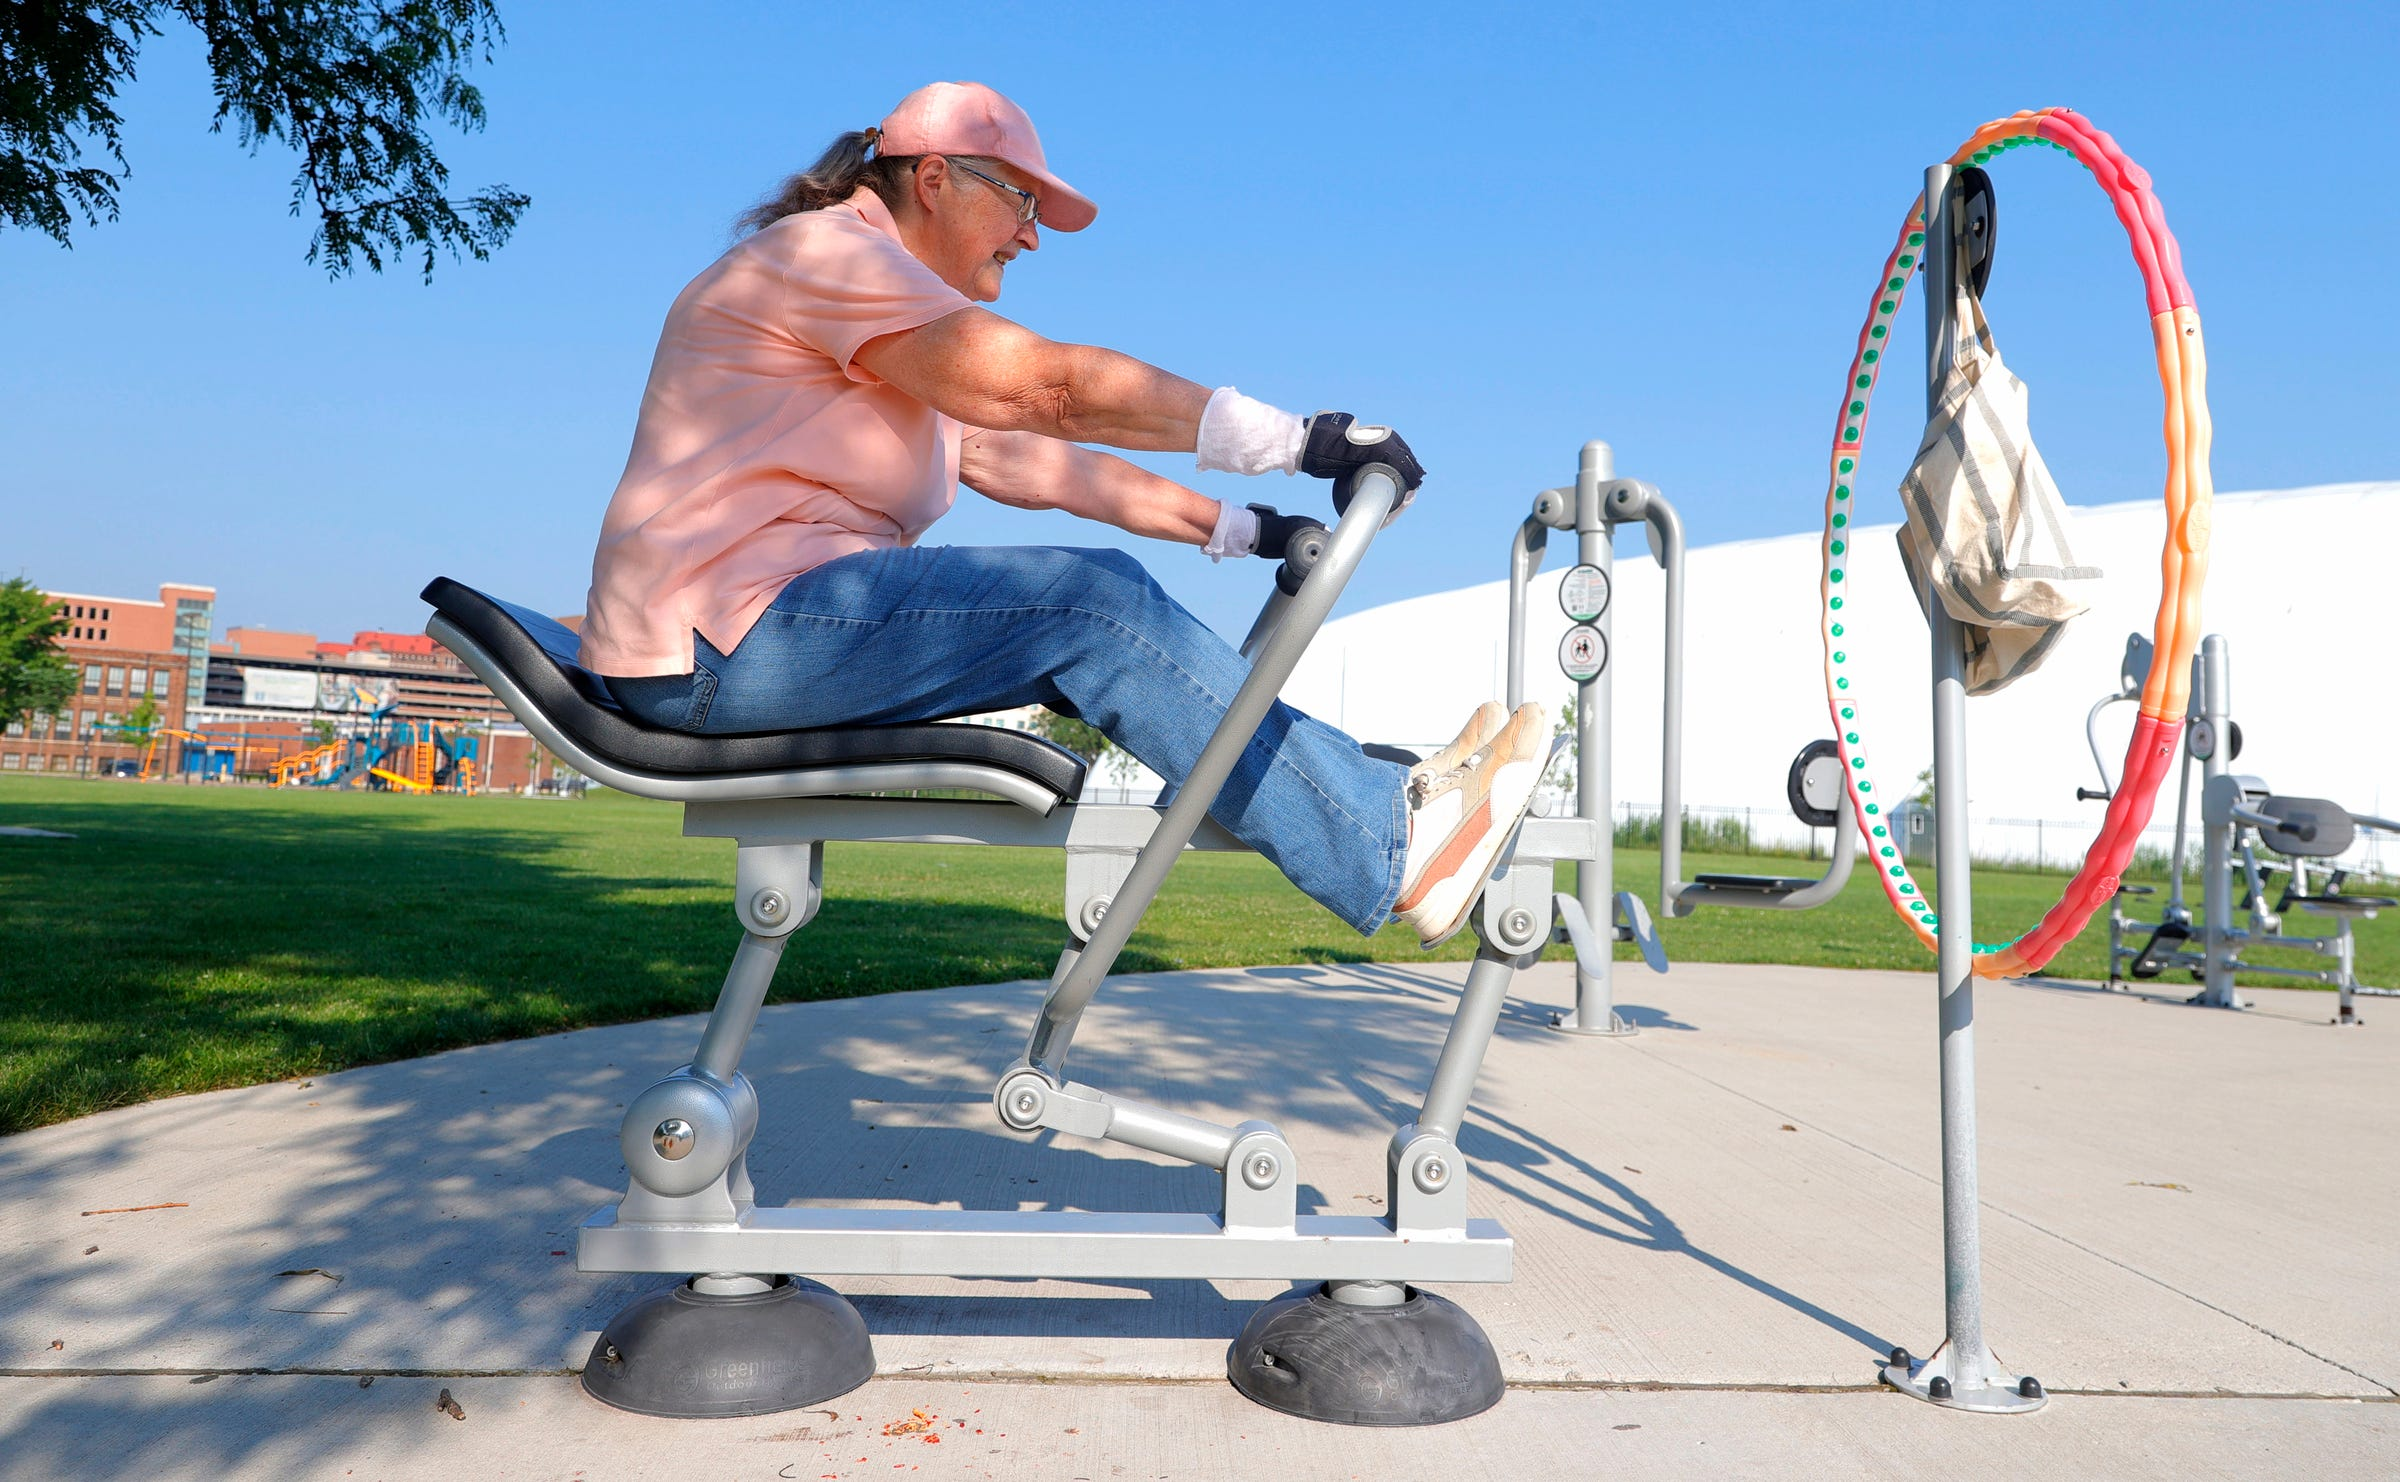 Margaret England works out on a rower machine at Tolan Park by the I-75 service drive and Mack Avenue on July 28, 2021. England, who comes here a few times each week, puts in up to two hours on the various workout equipment that's free for the public to use. She's been on a mission to get and stay fit.